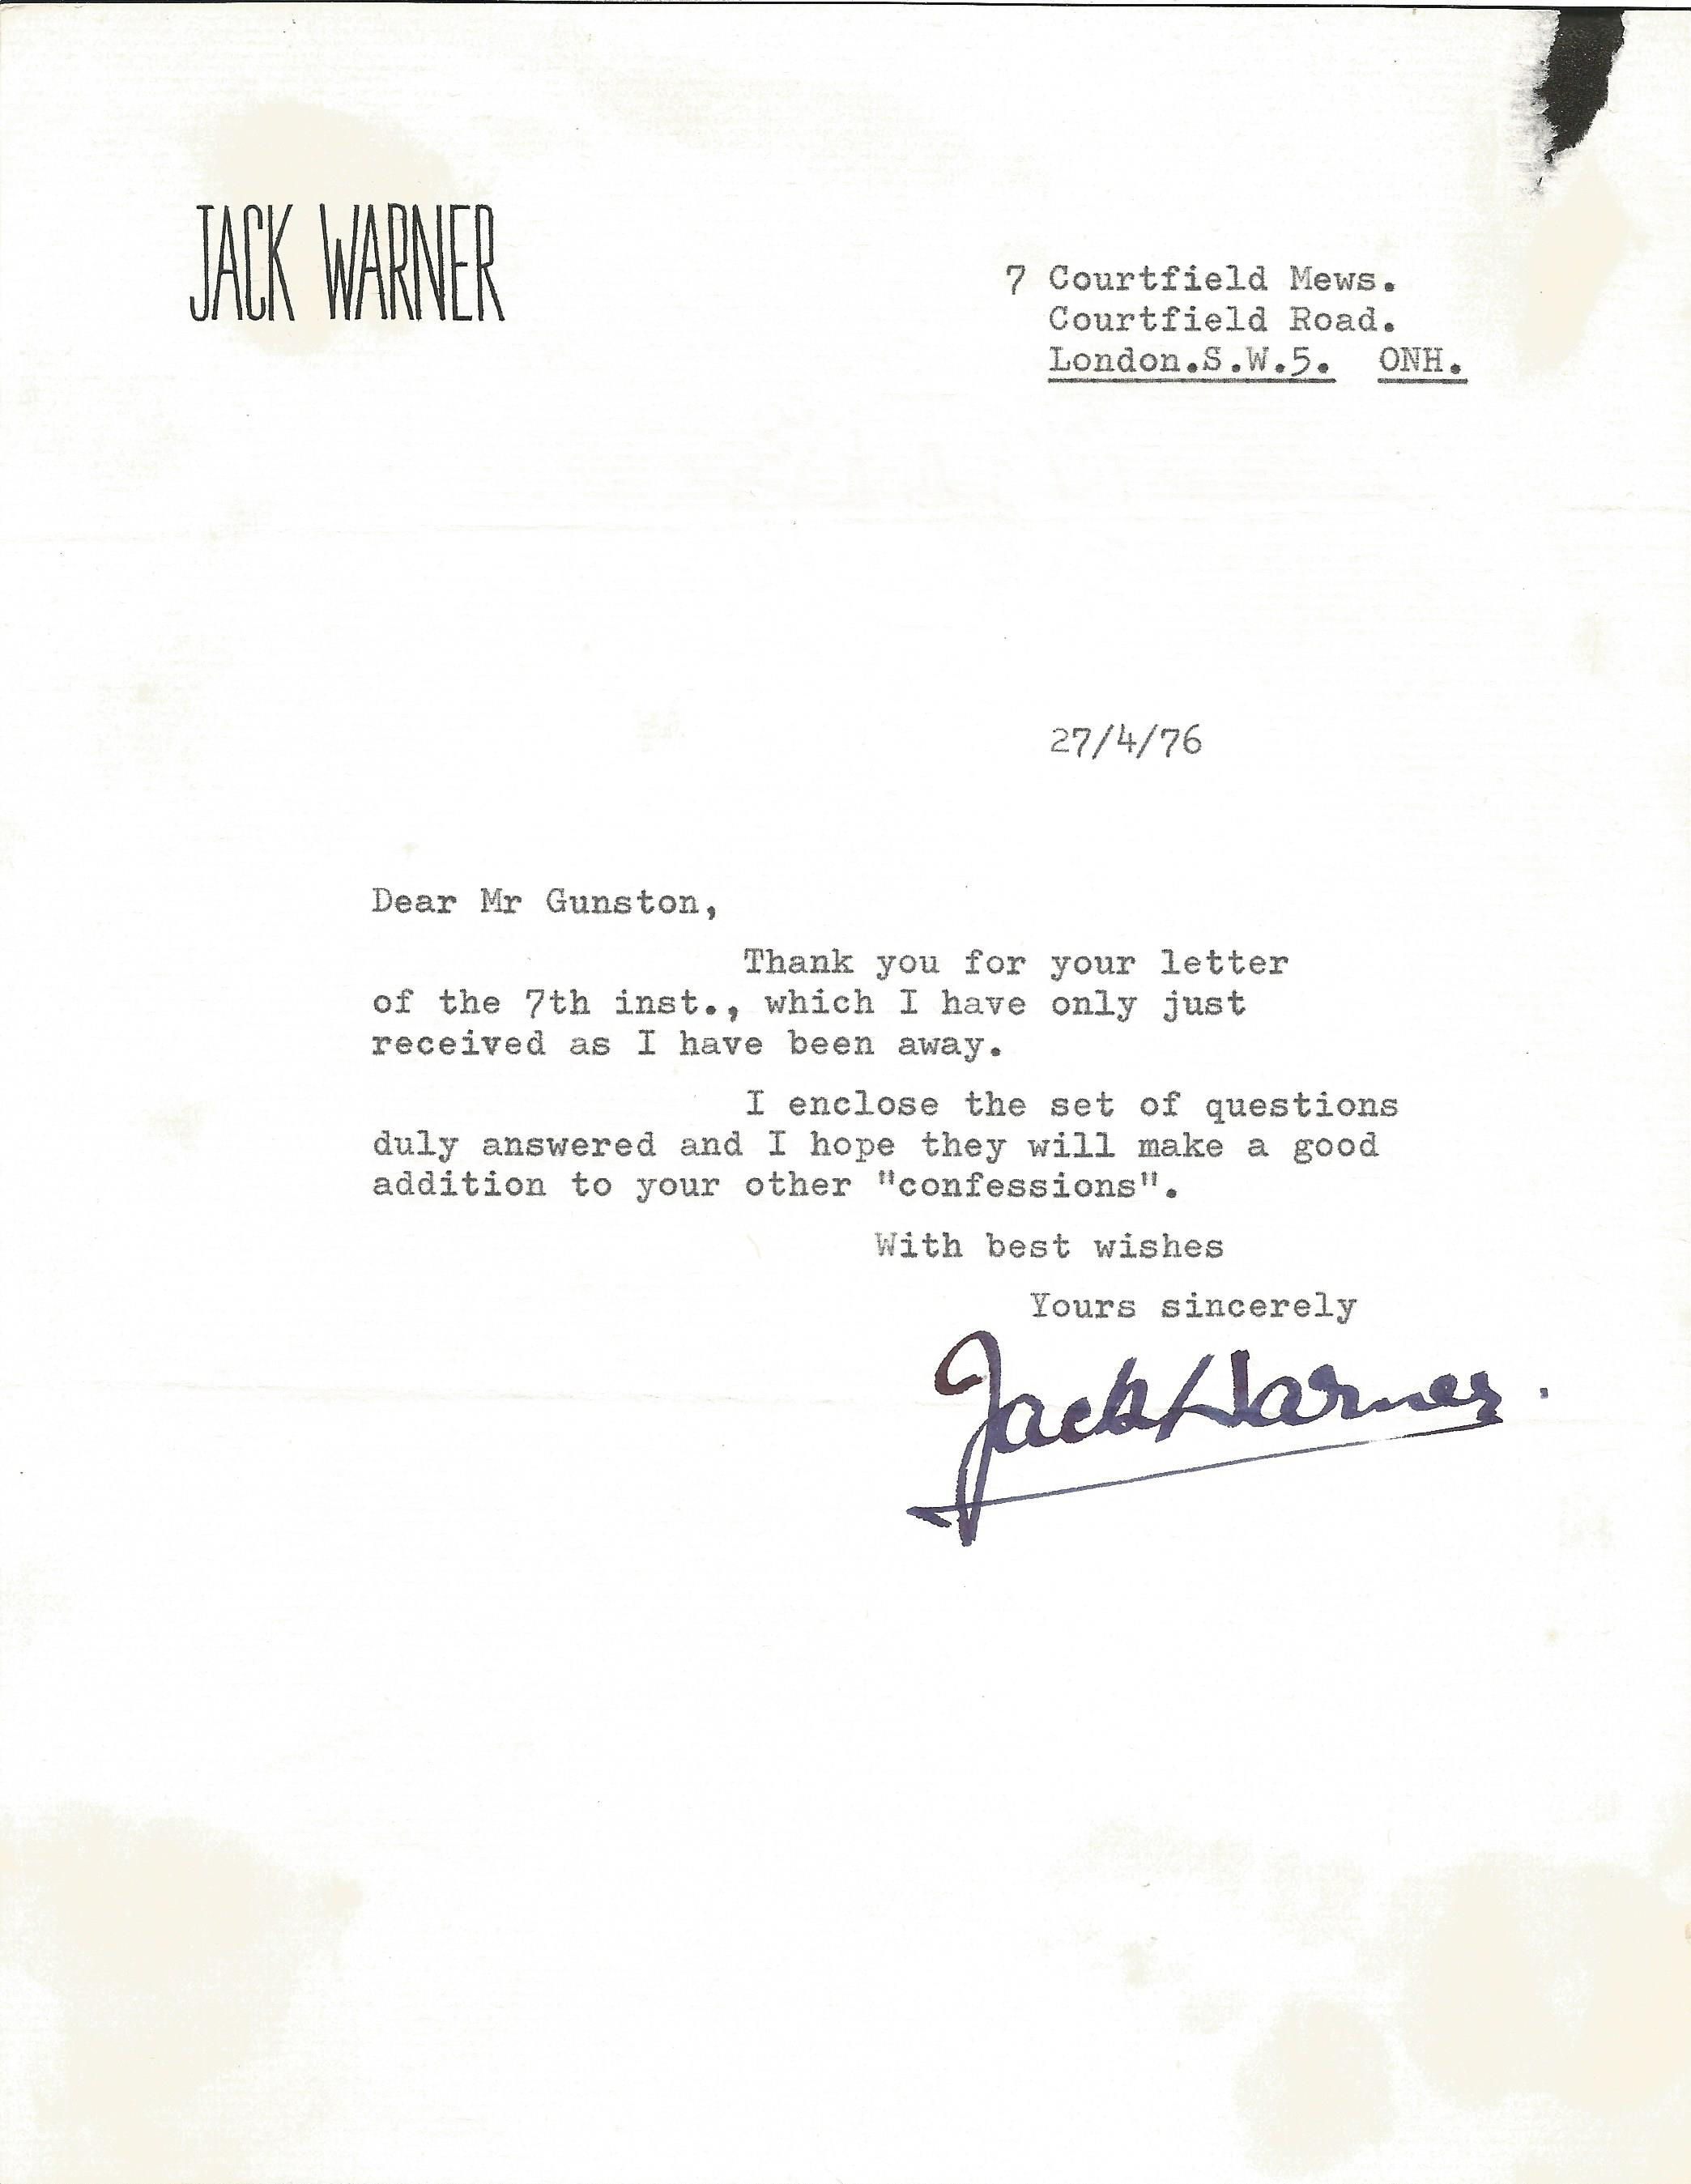 Actor Jack Warner signed and dated headed paper enclosing the answers to a questionnaire he was sent